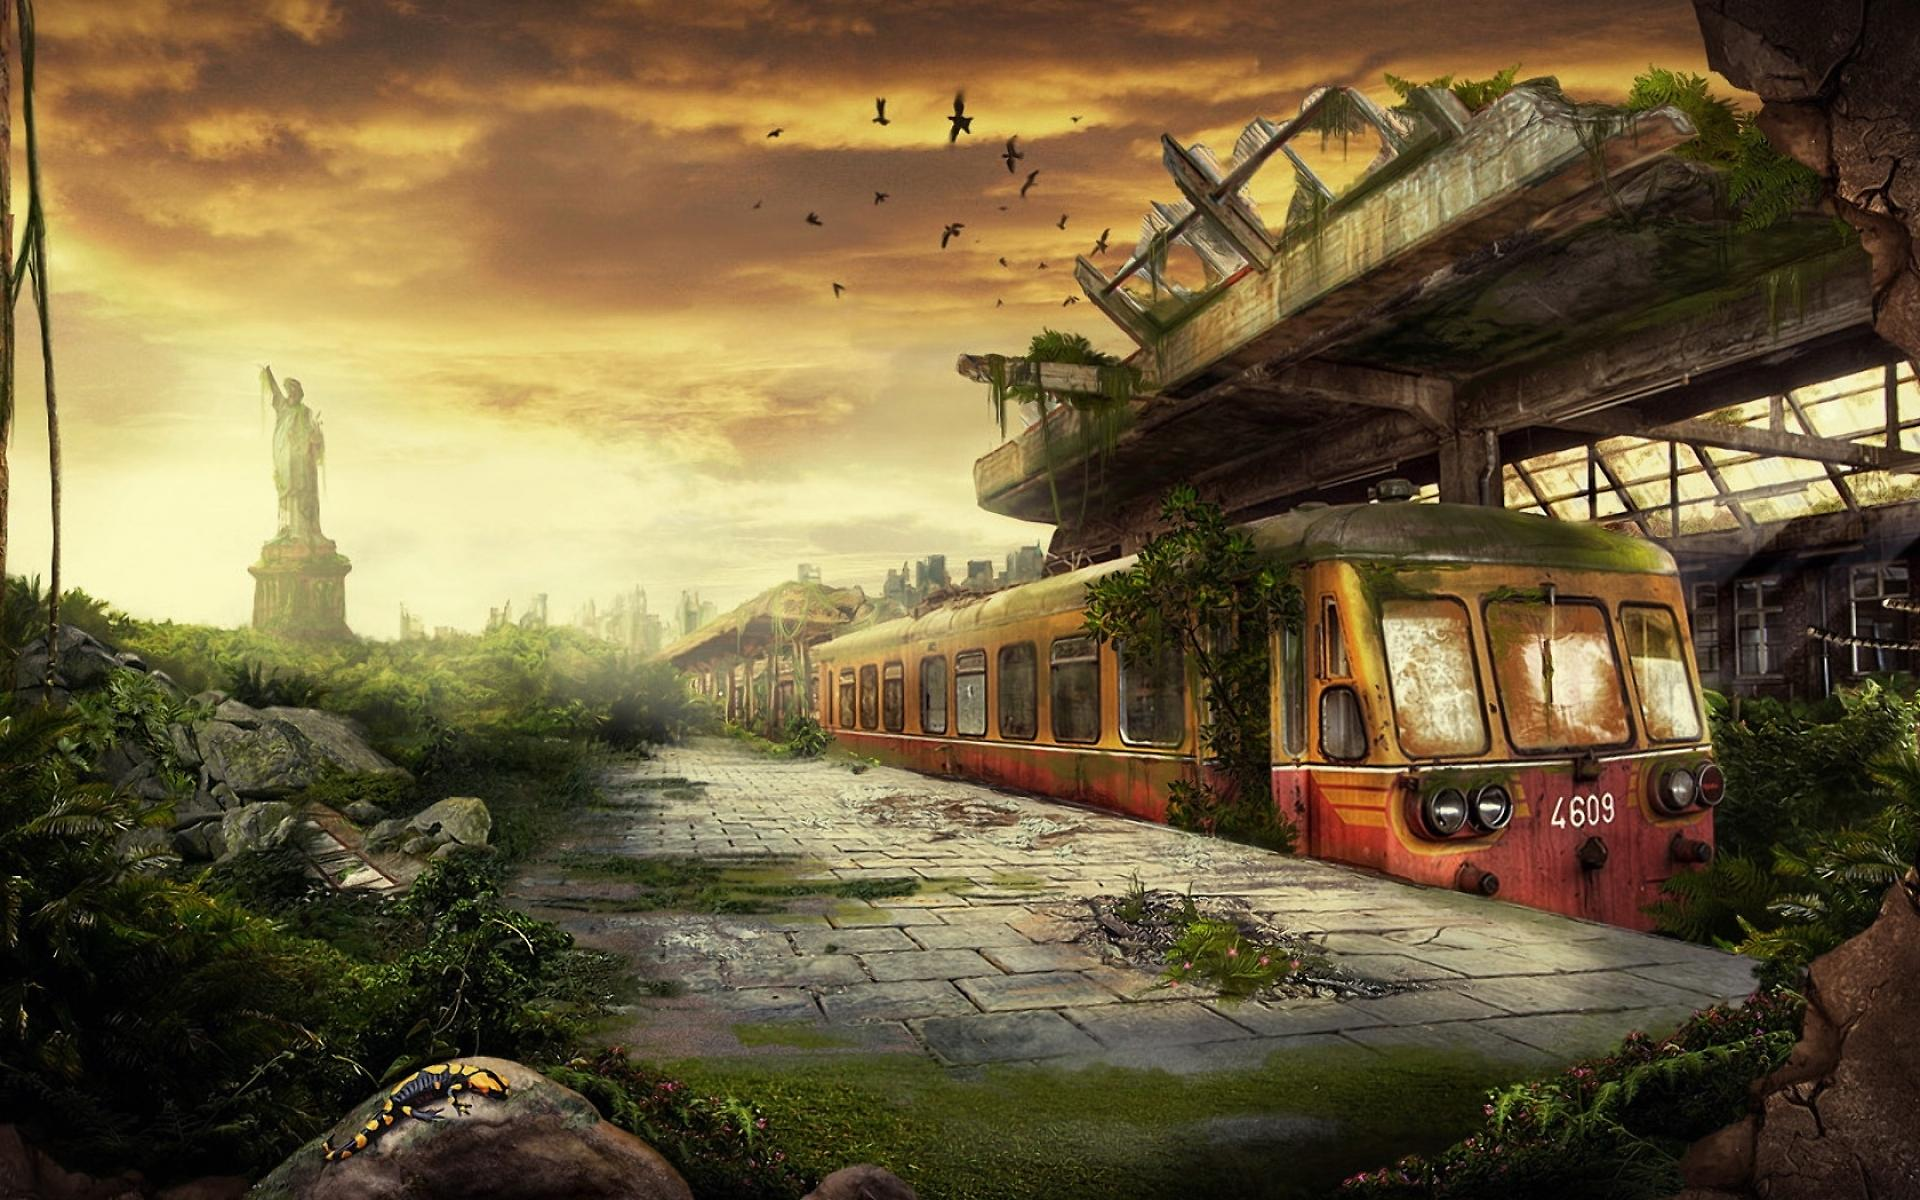 apocalyptic city wallpaper - photo #29